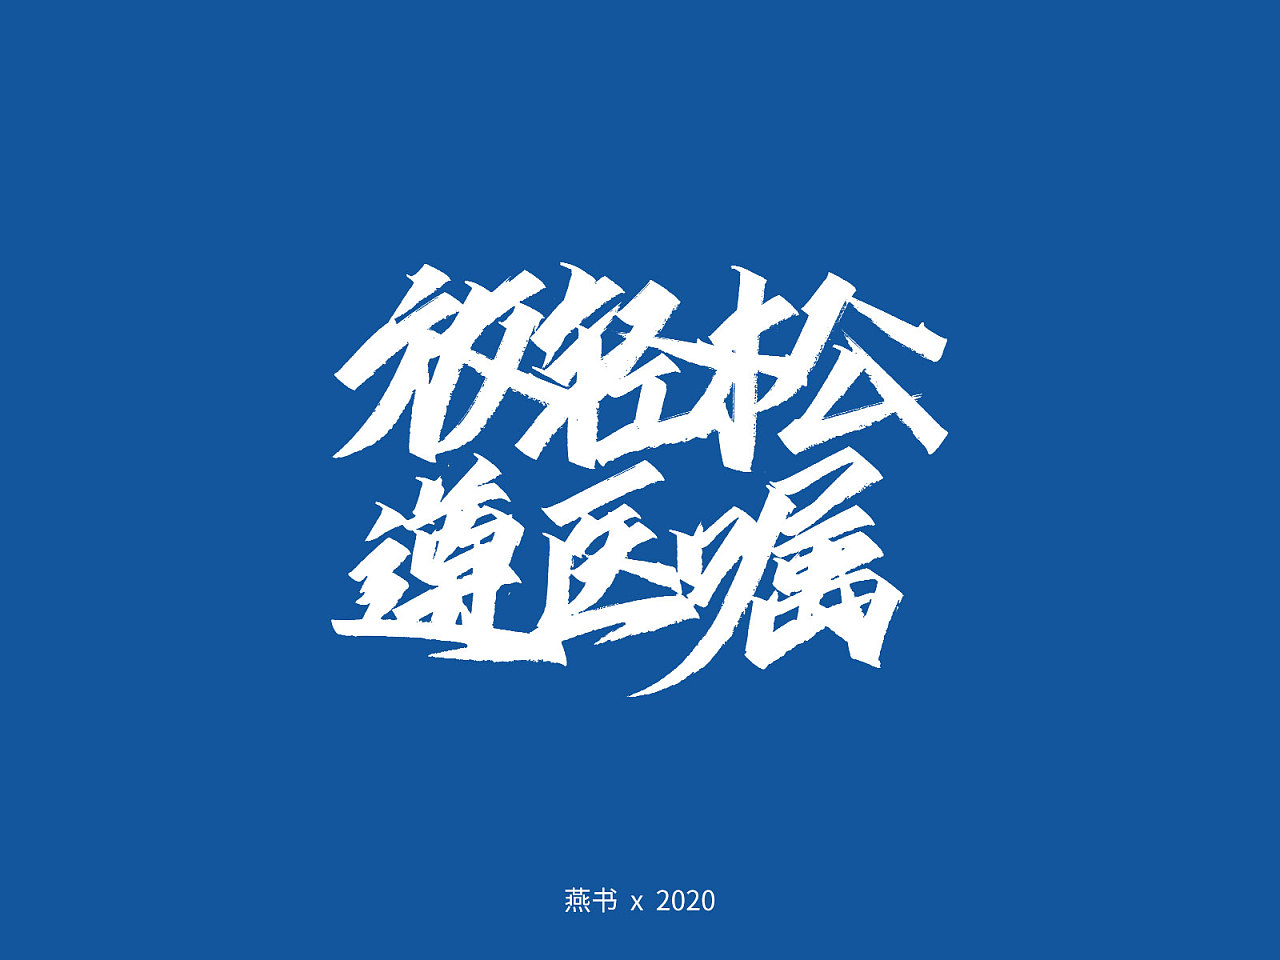 Chinese Creative Font Design-Wuhan Refueling Series 13